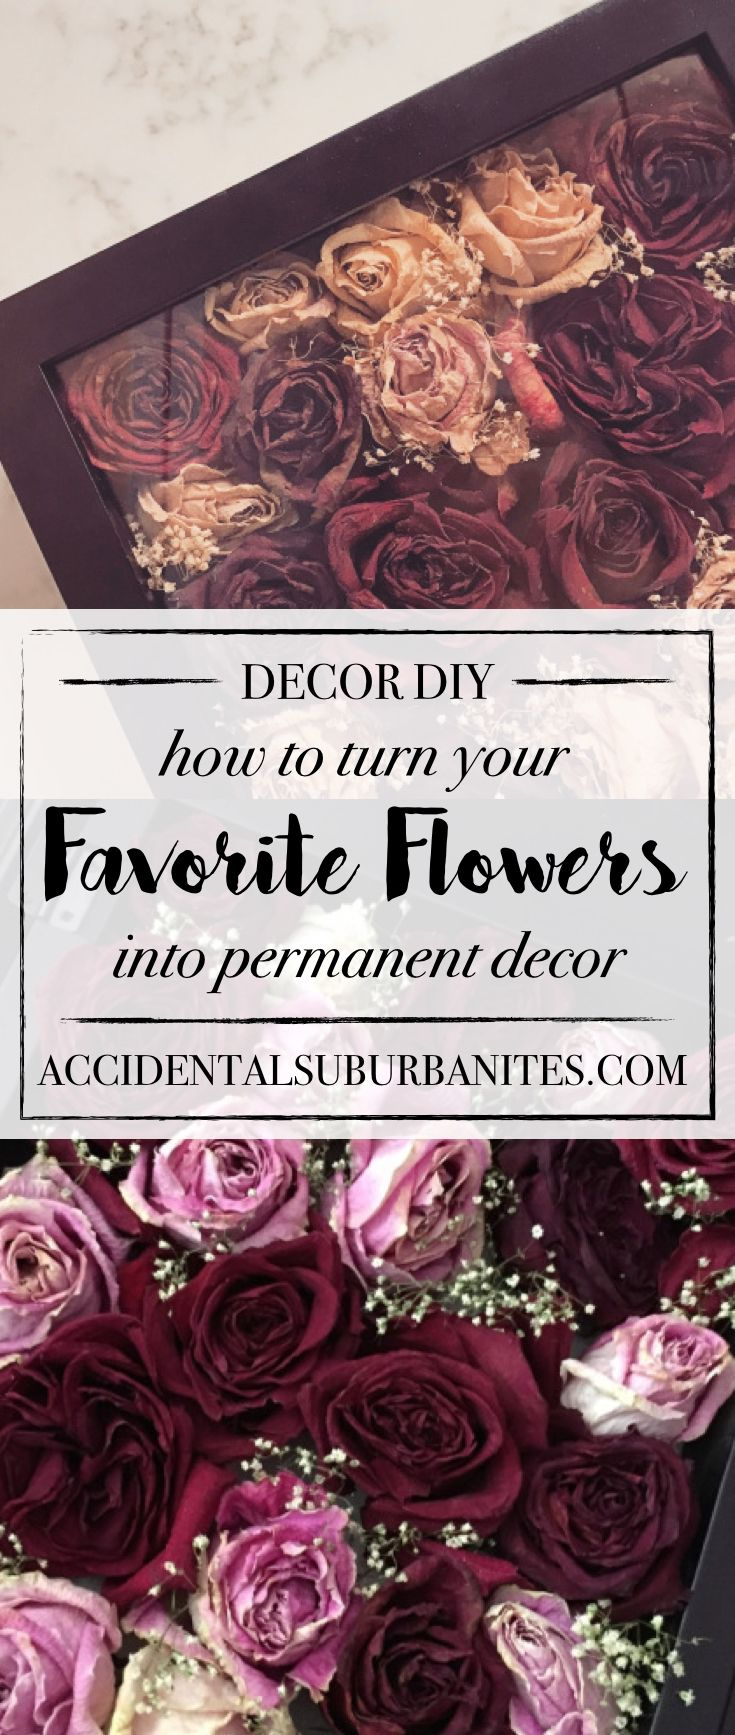 DIY dried roses in a shadow box - preserve roses! want to turn a meaningful bouquet into long-lasting home decor? Here's how to dry and preserve your favorite flowers and display them in a shadow box!